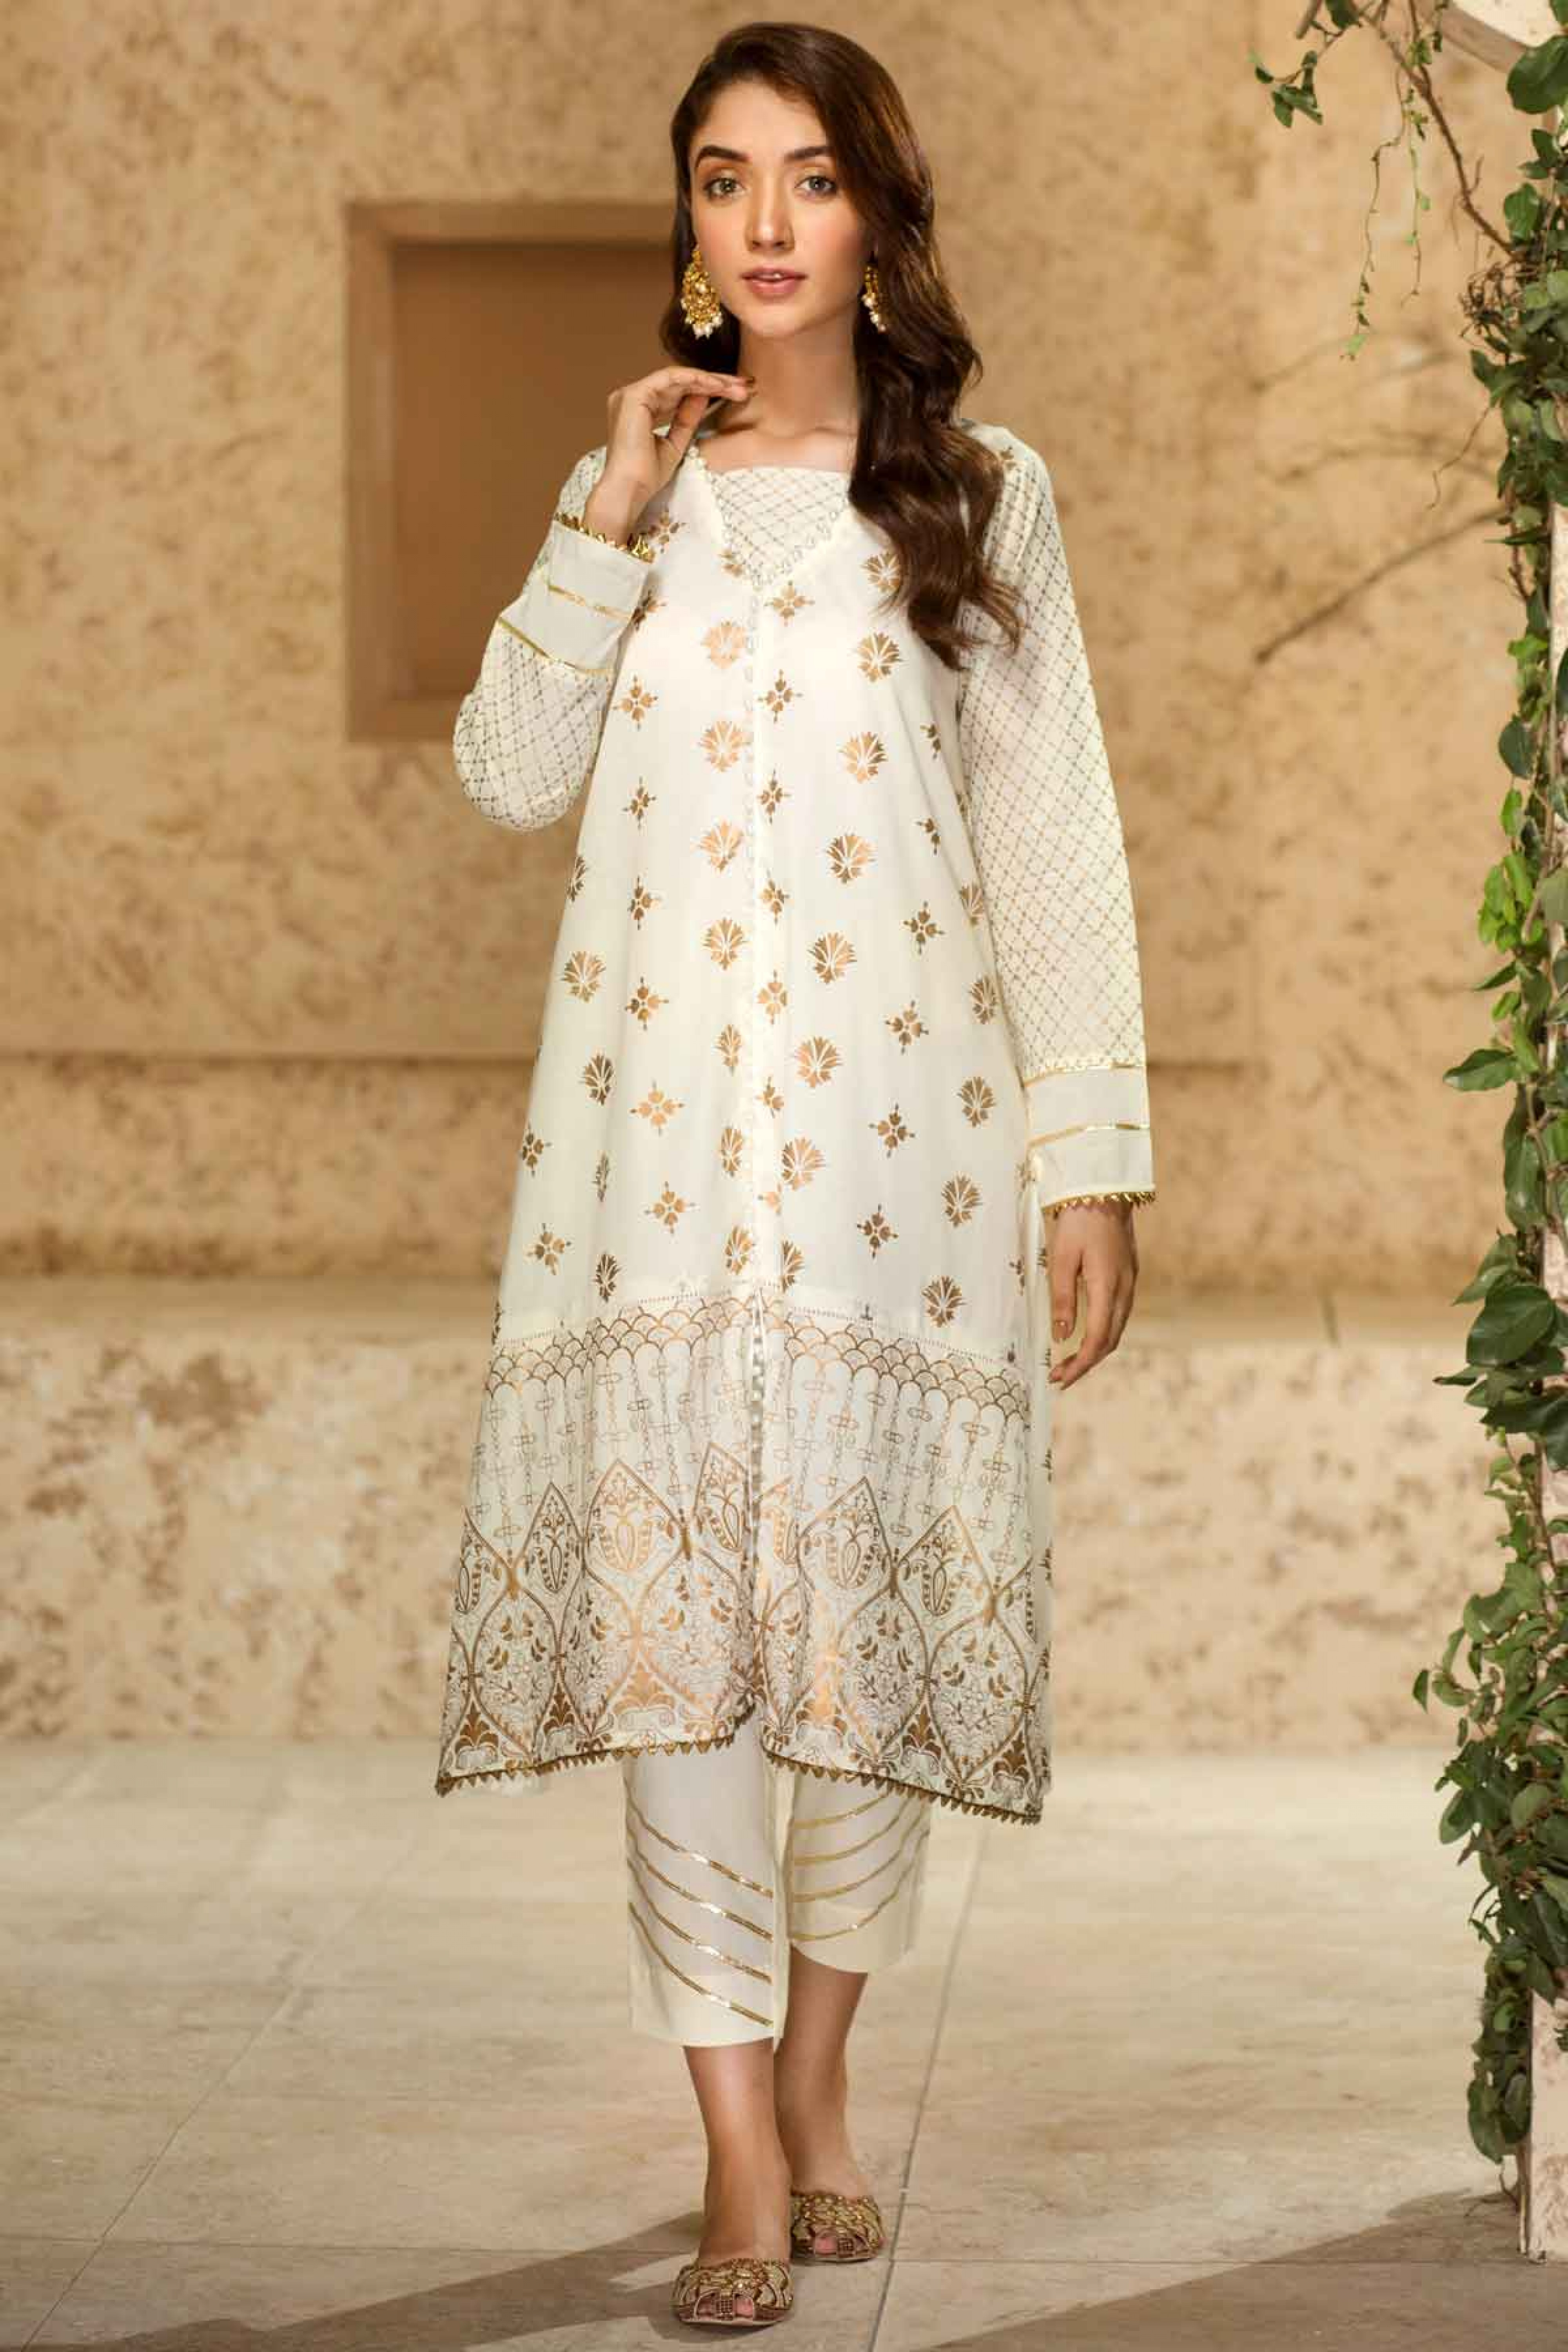 JEHAN(Gold Printed Frock)